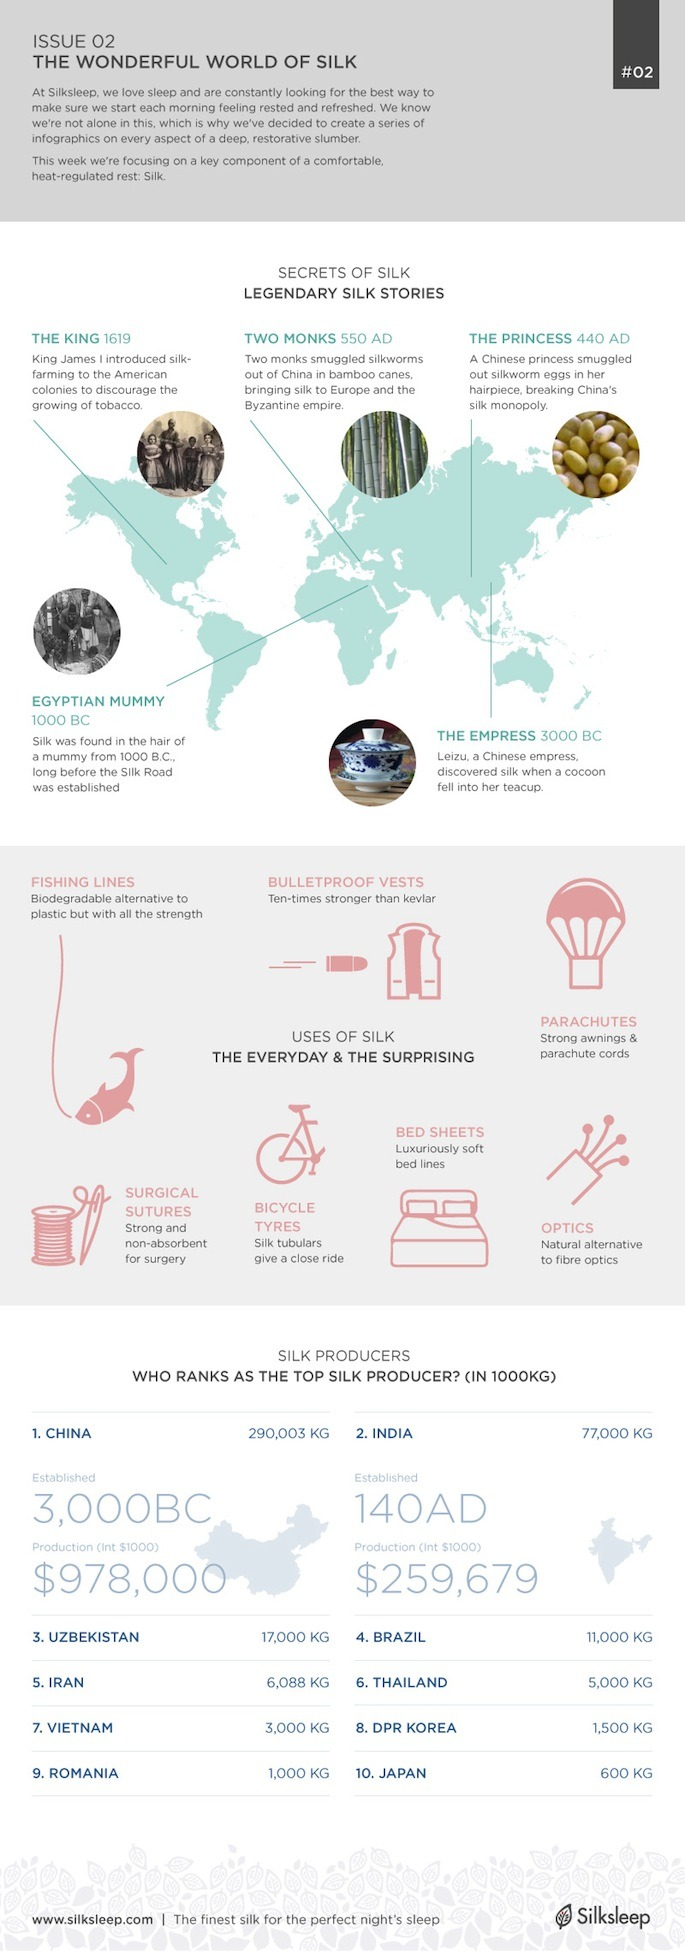 Uses of Silk Infographic